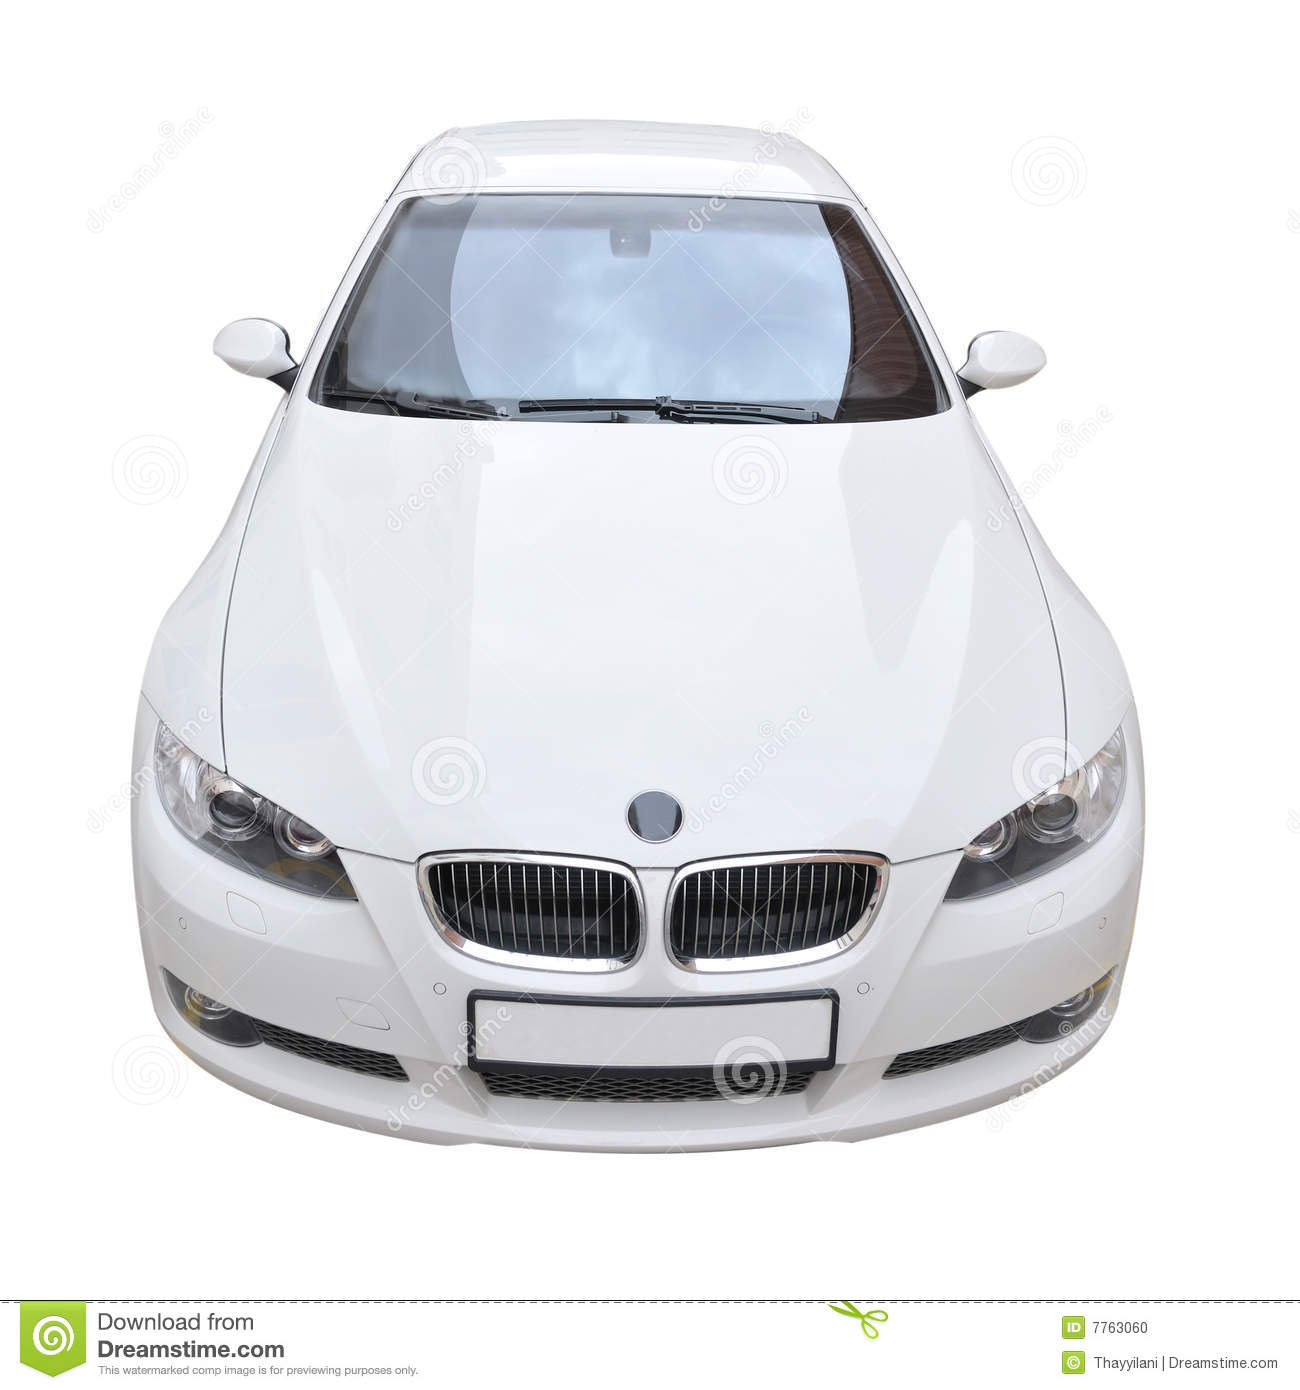 Bmwcarimage: BMW 335i White Convertible Car Stock Illustration